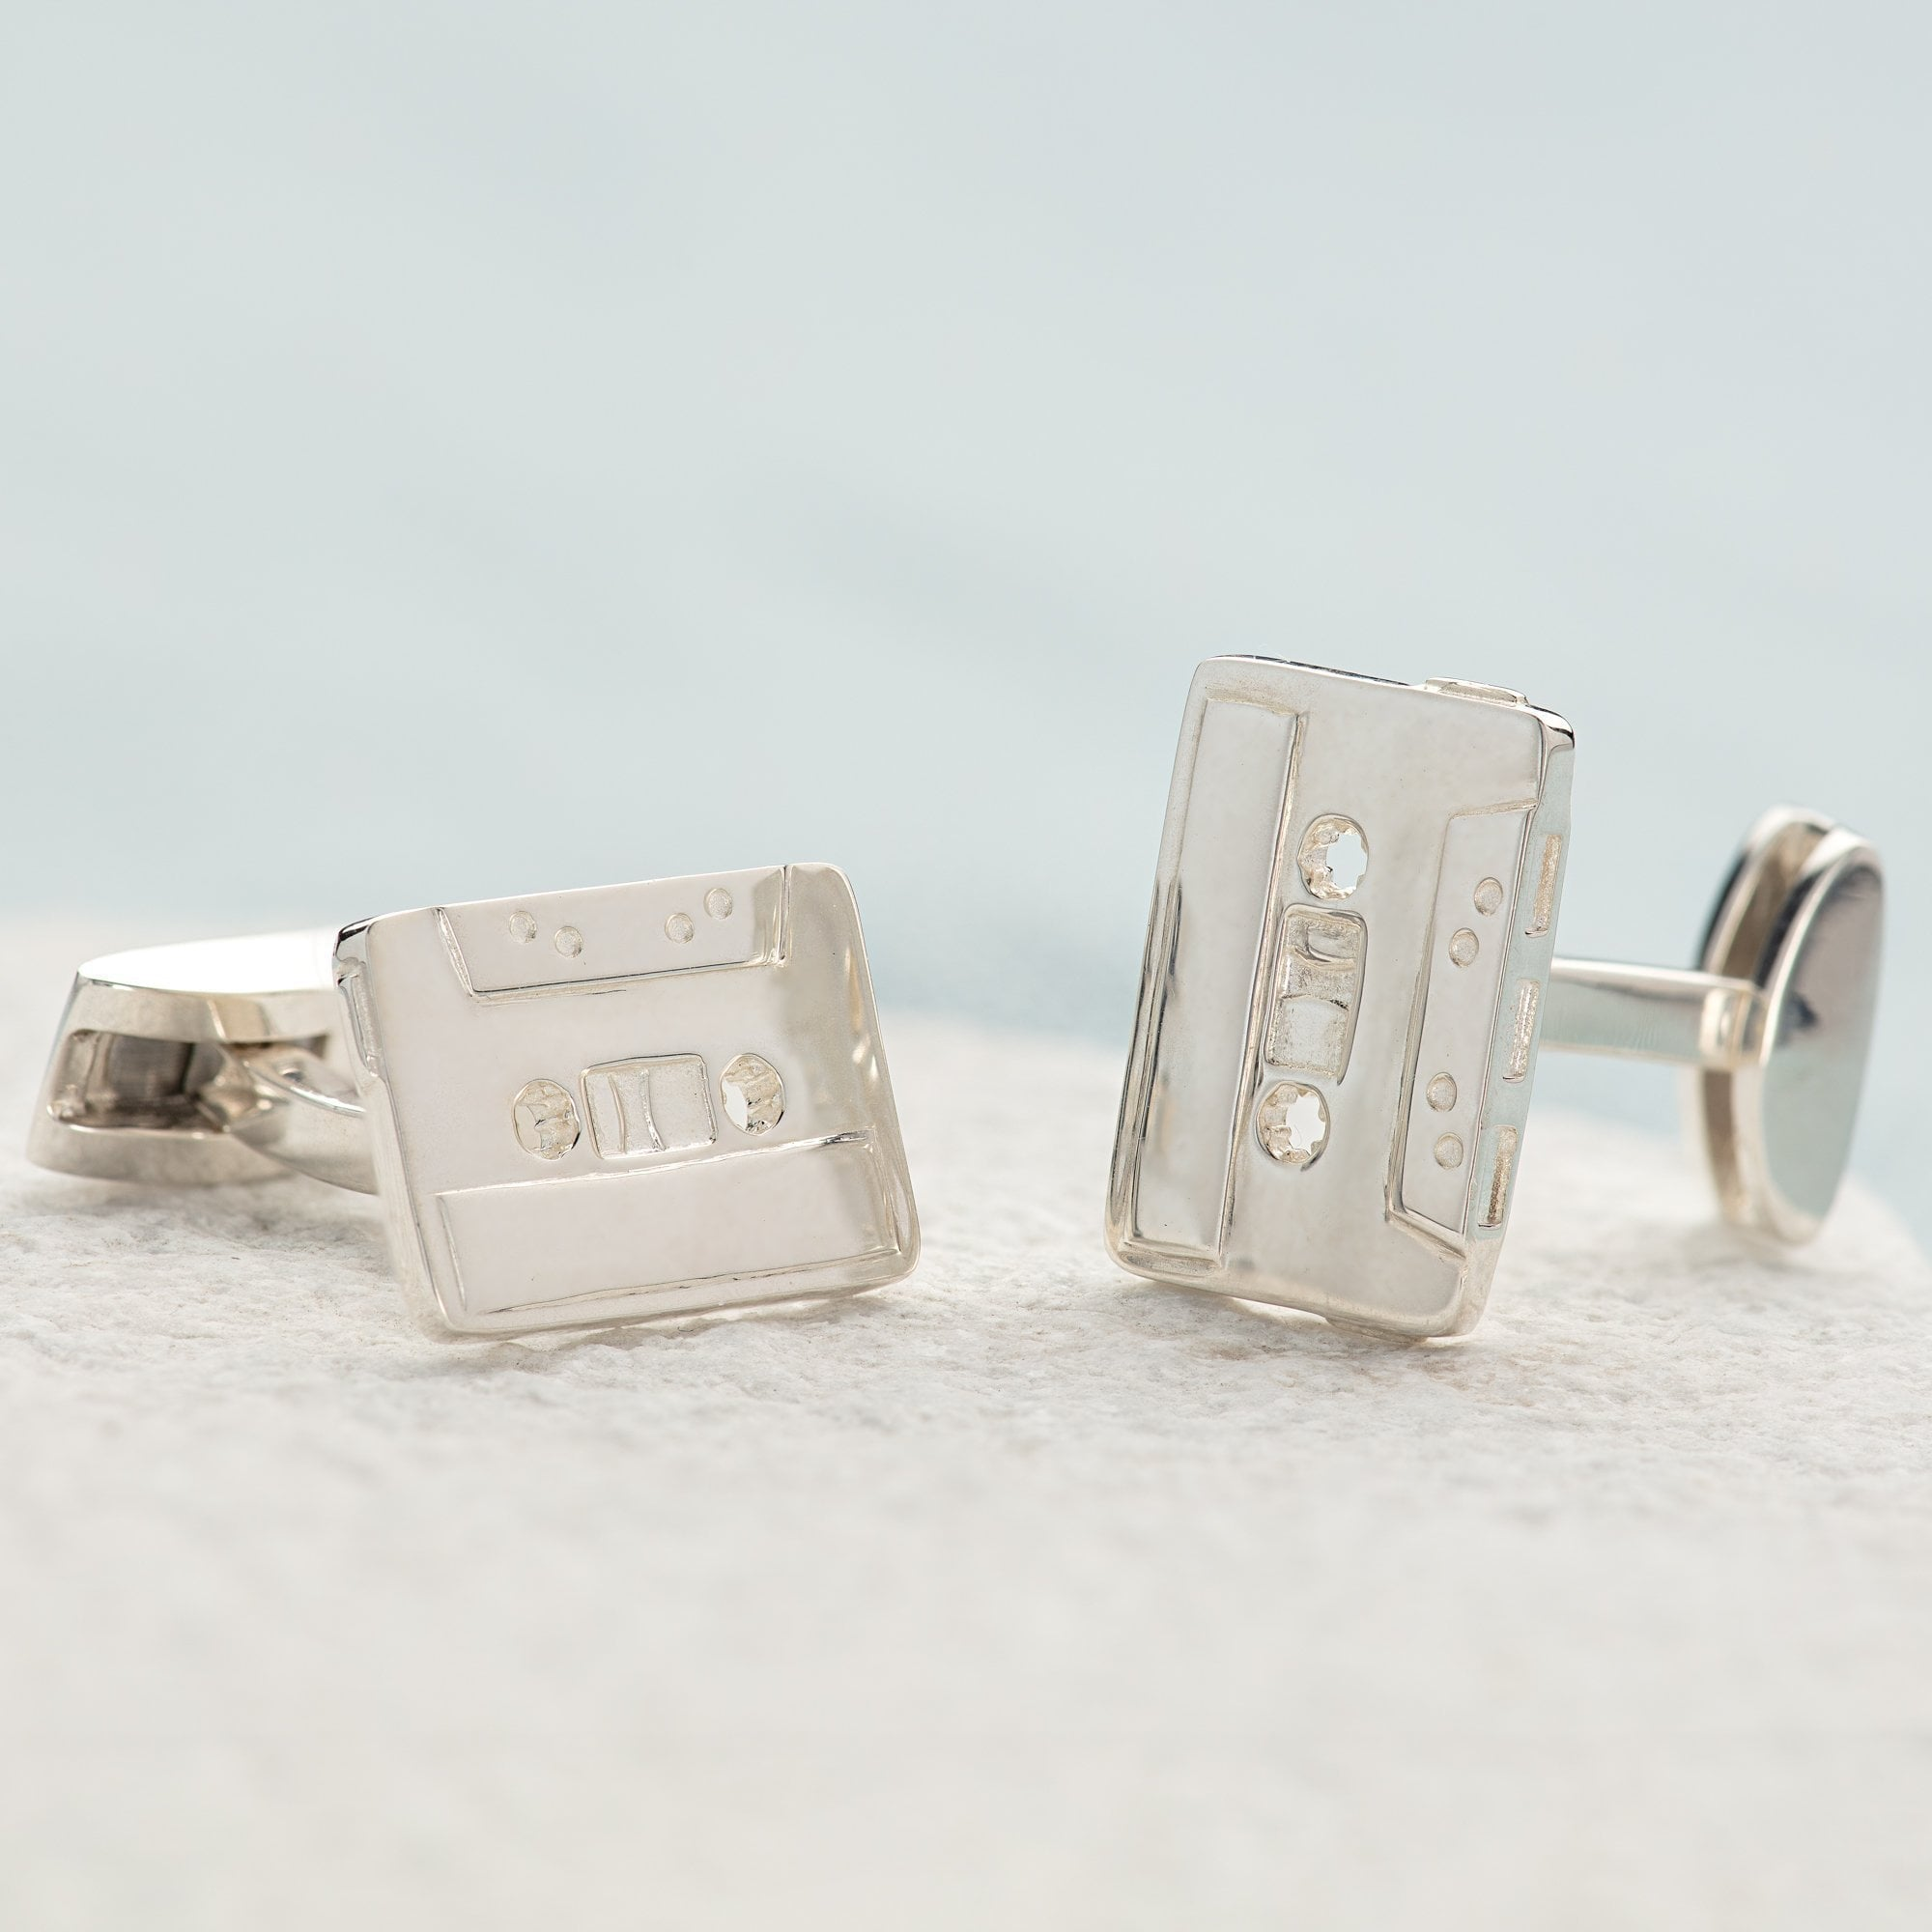 Silver Cassette Tape Cufflinks - Lily Charmed